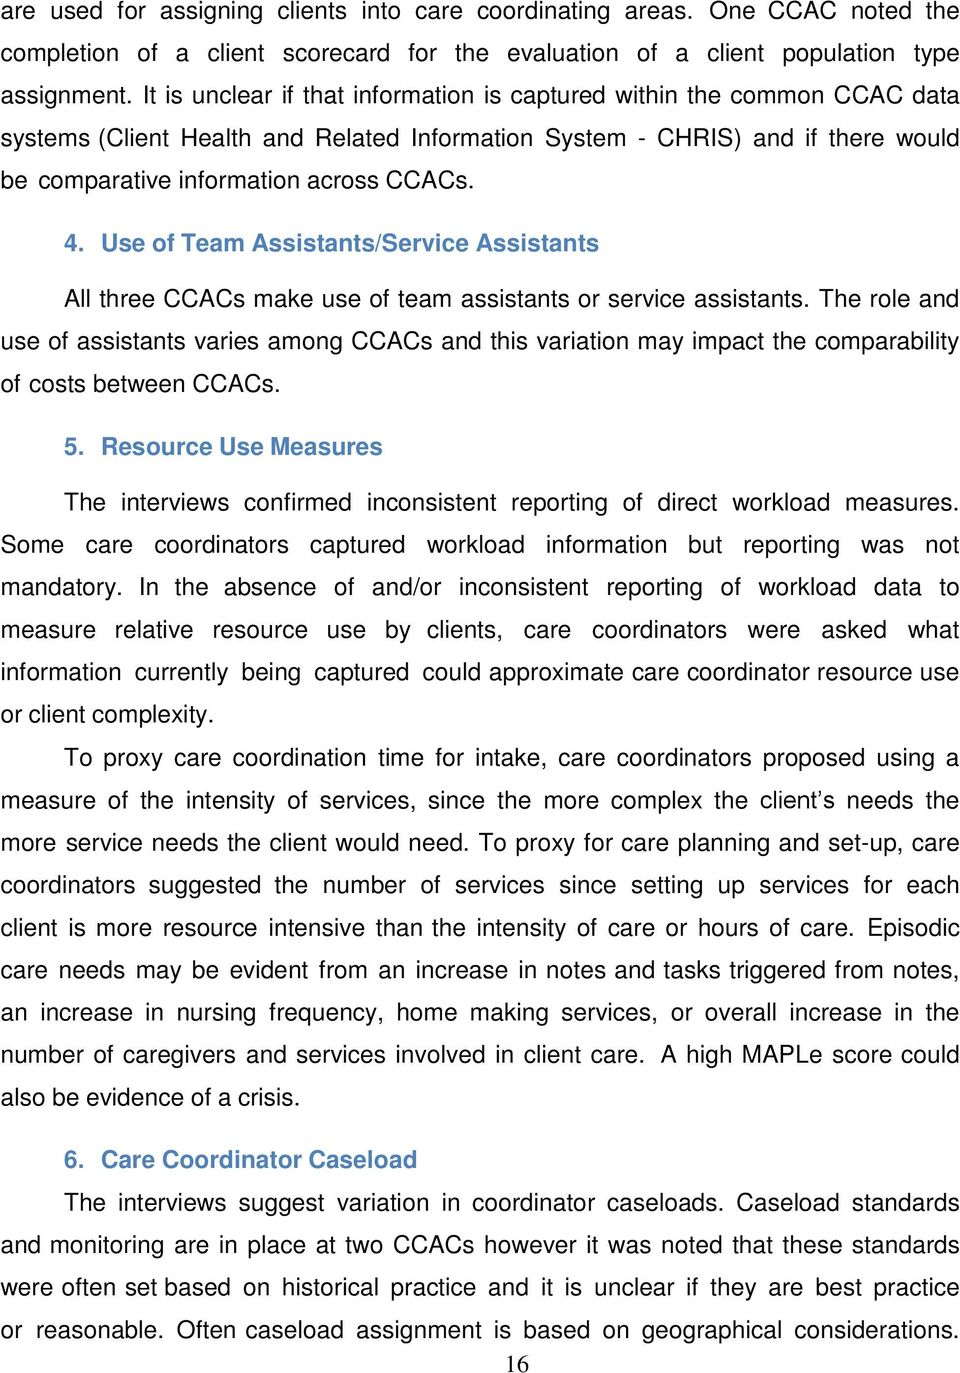 Use of Team Assistants/Service Assistants All three CCACs make use of team assistants or service assistants.